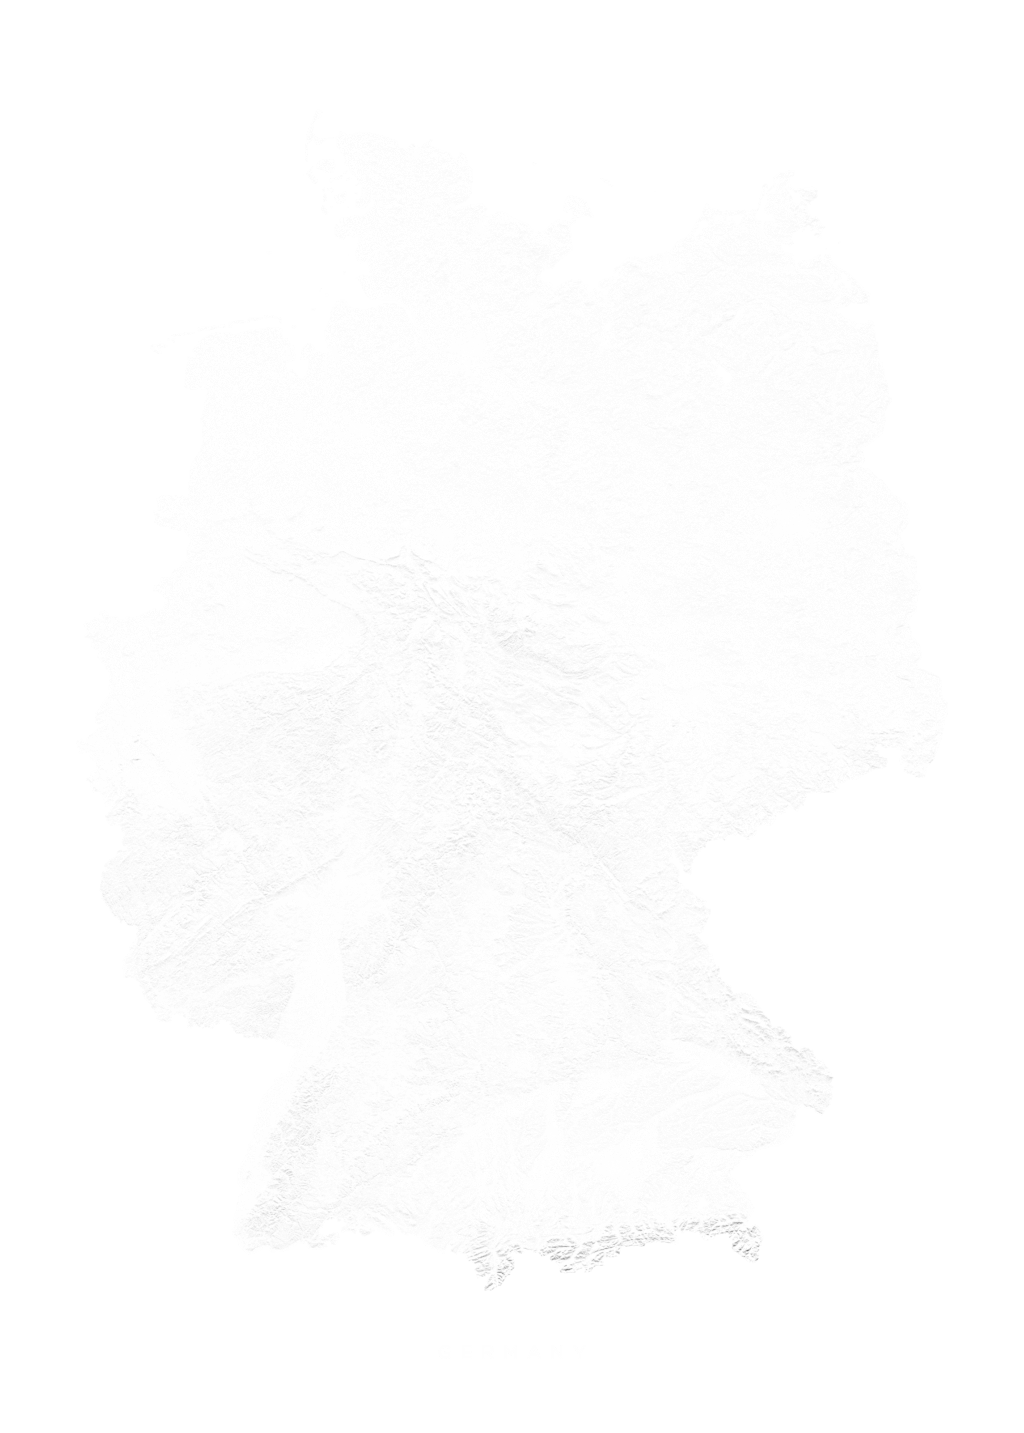 Germany wall map